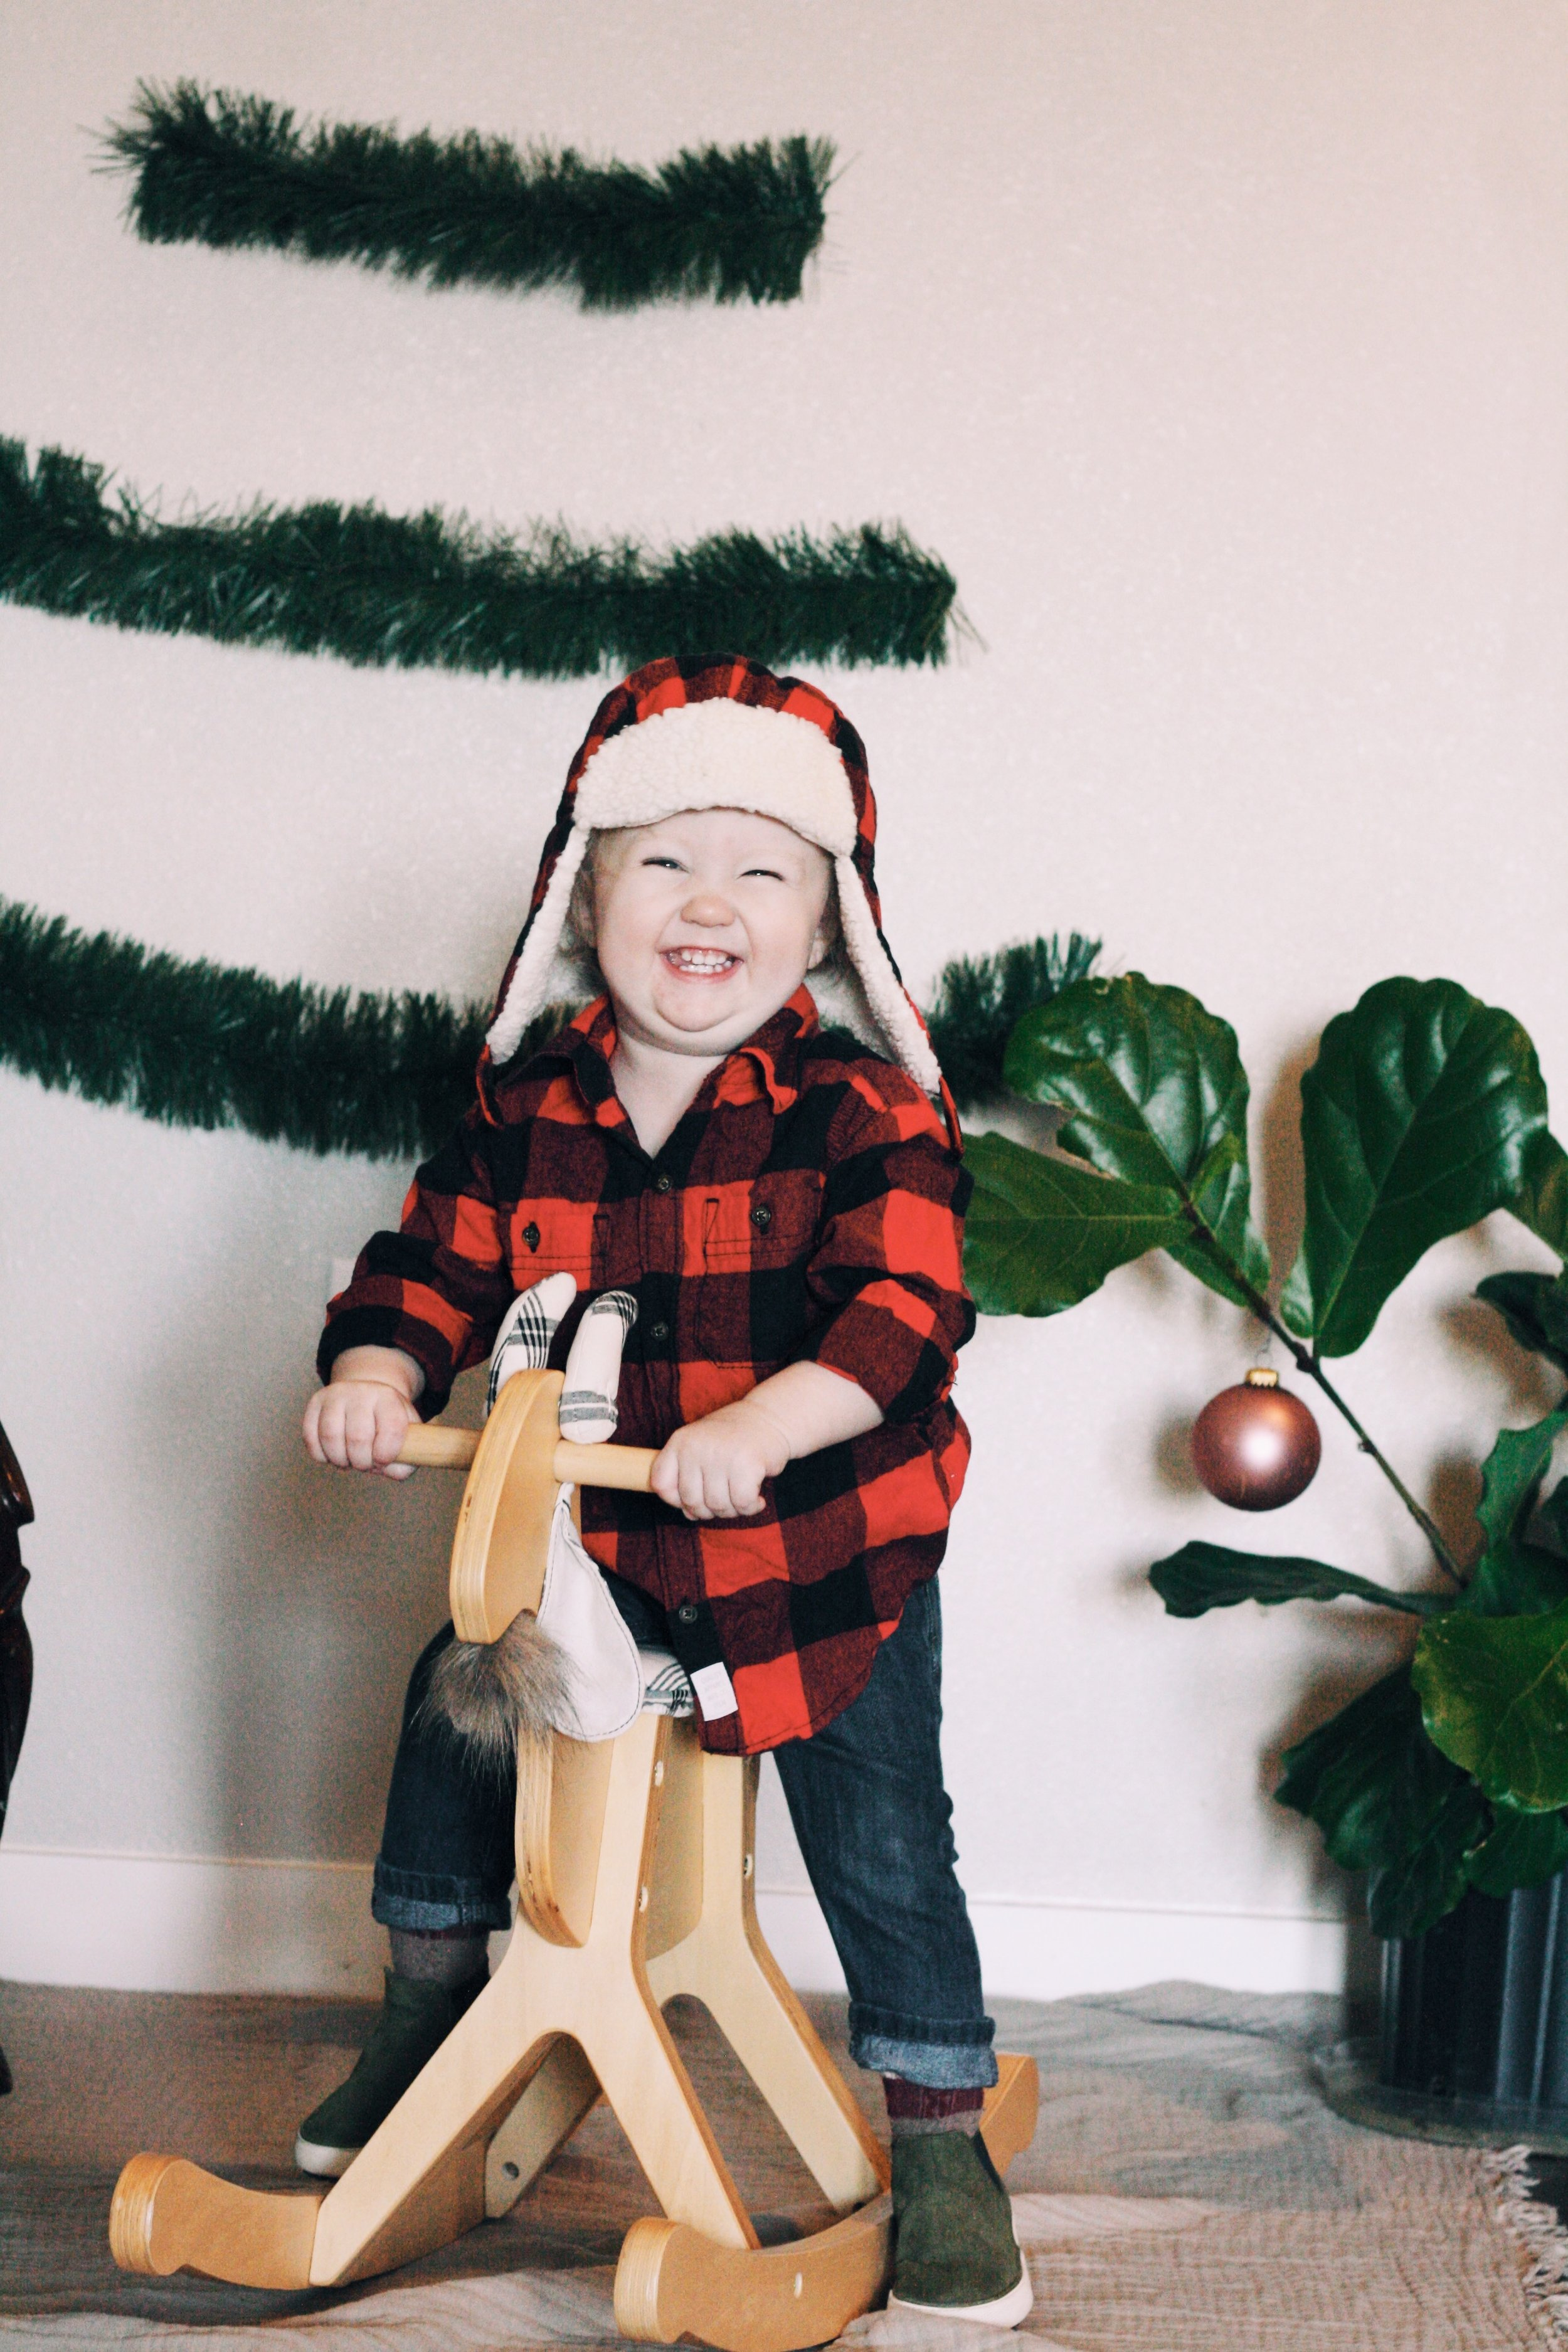 A DIY HOLIDAY SHOOT FOR KIDS - This Wild Home